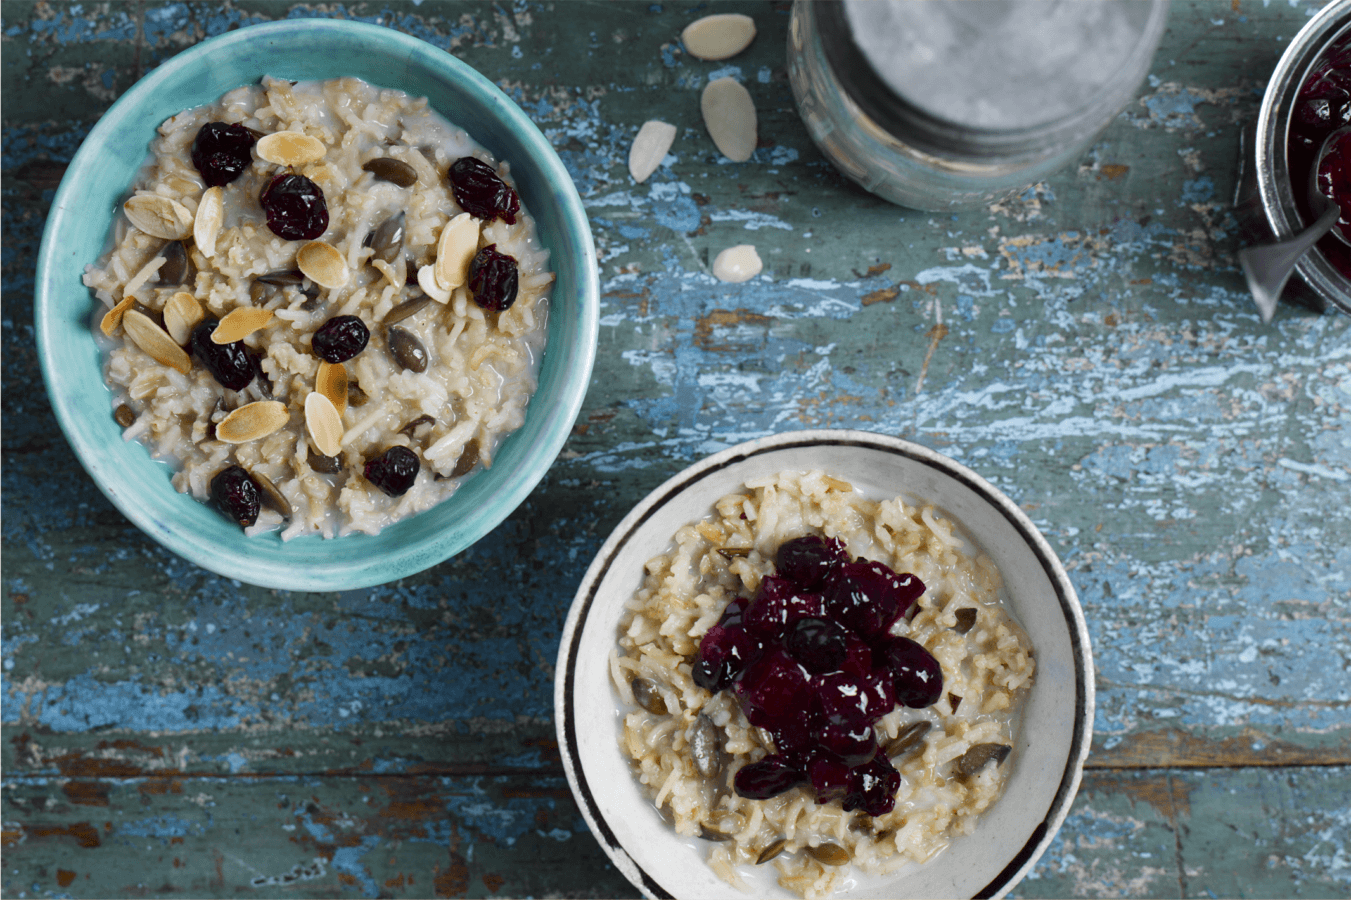 Cranberry and Pumpkin Seed Porridge